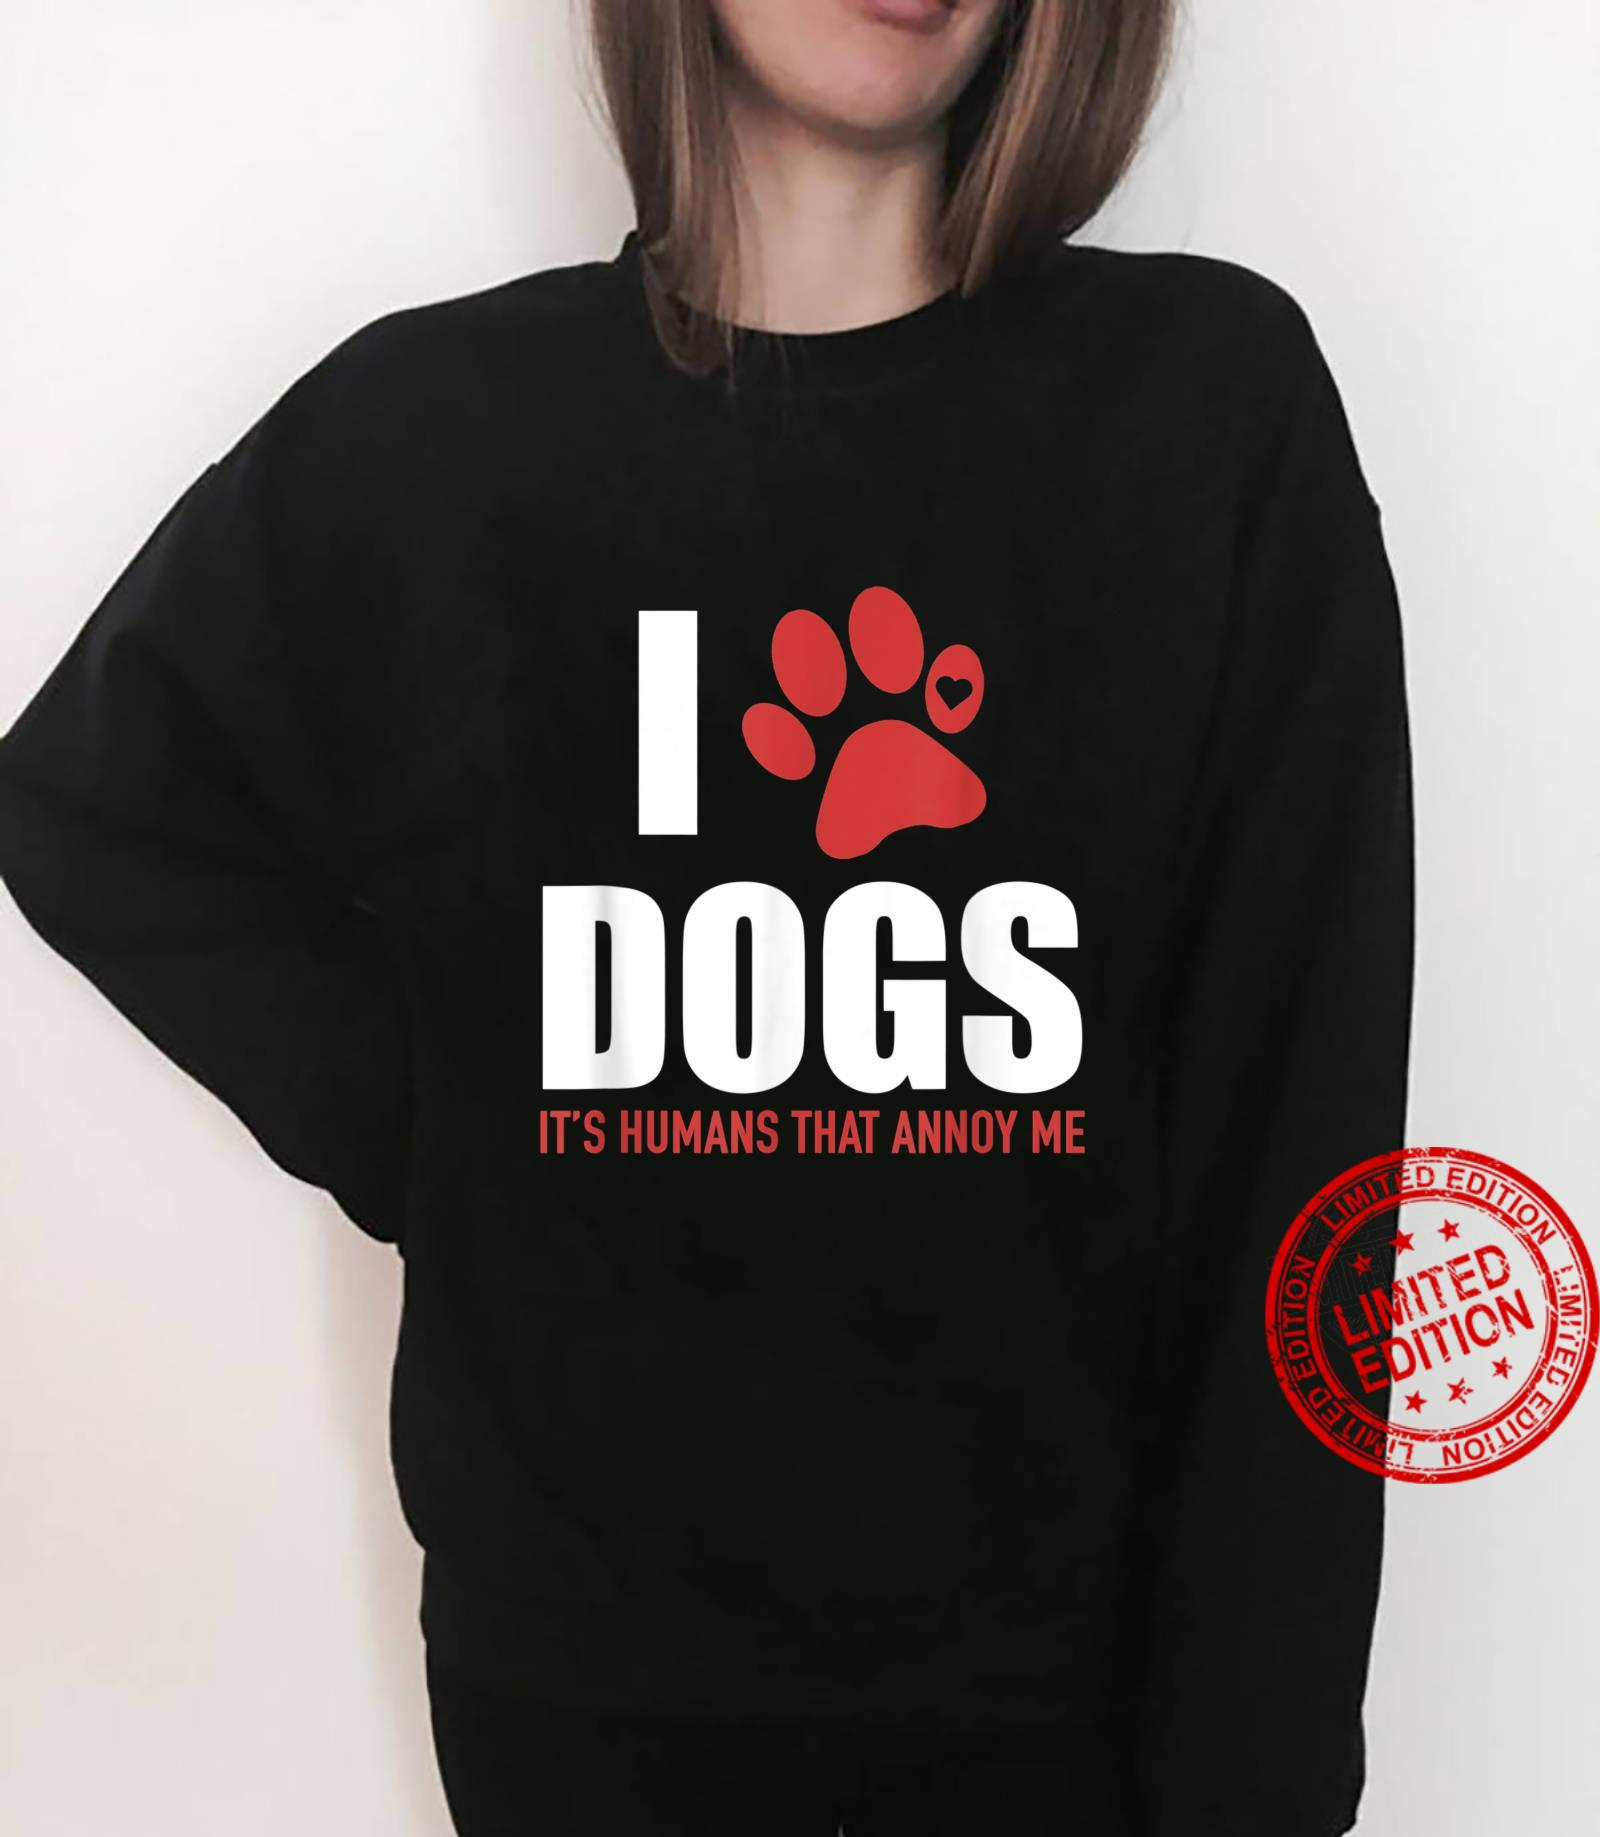 I Love Dogs It's Humans That Annoy Me, Shirt sweater